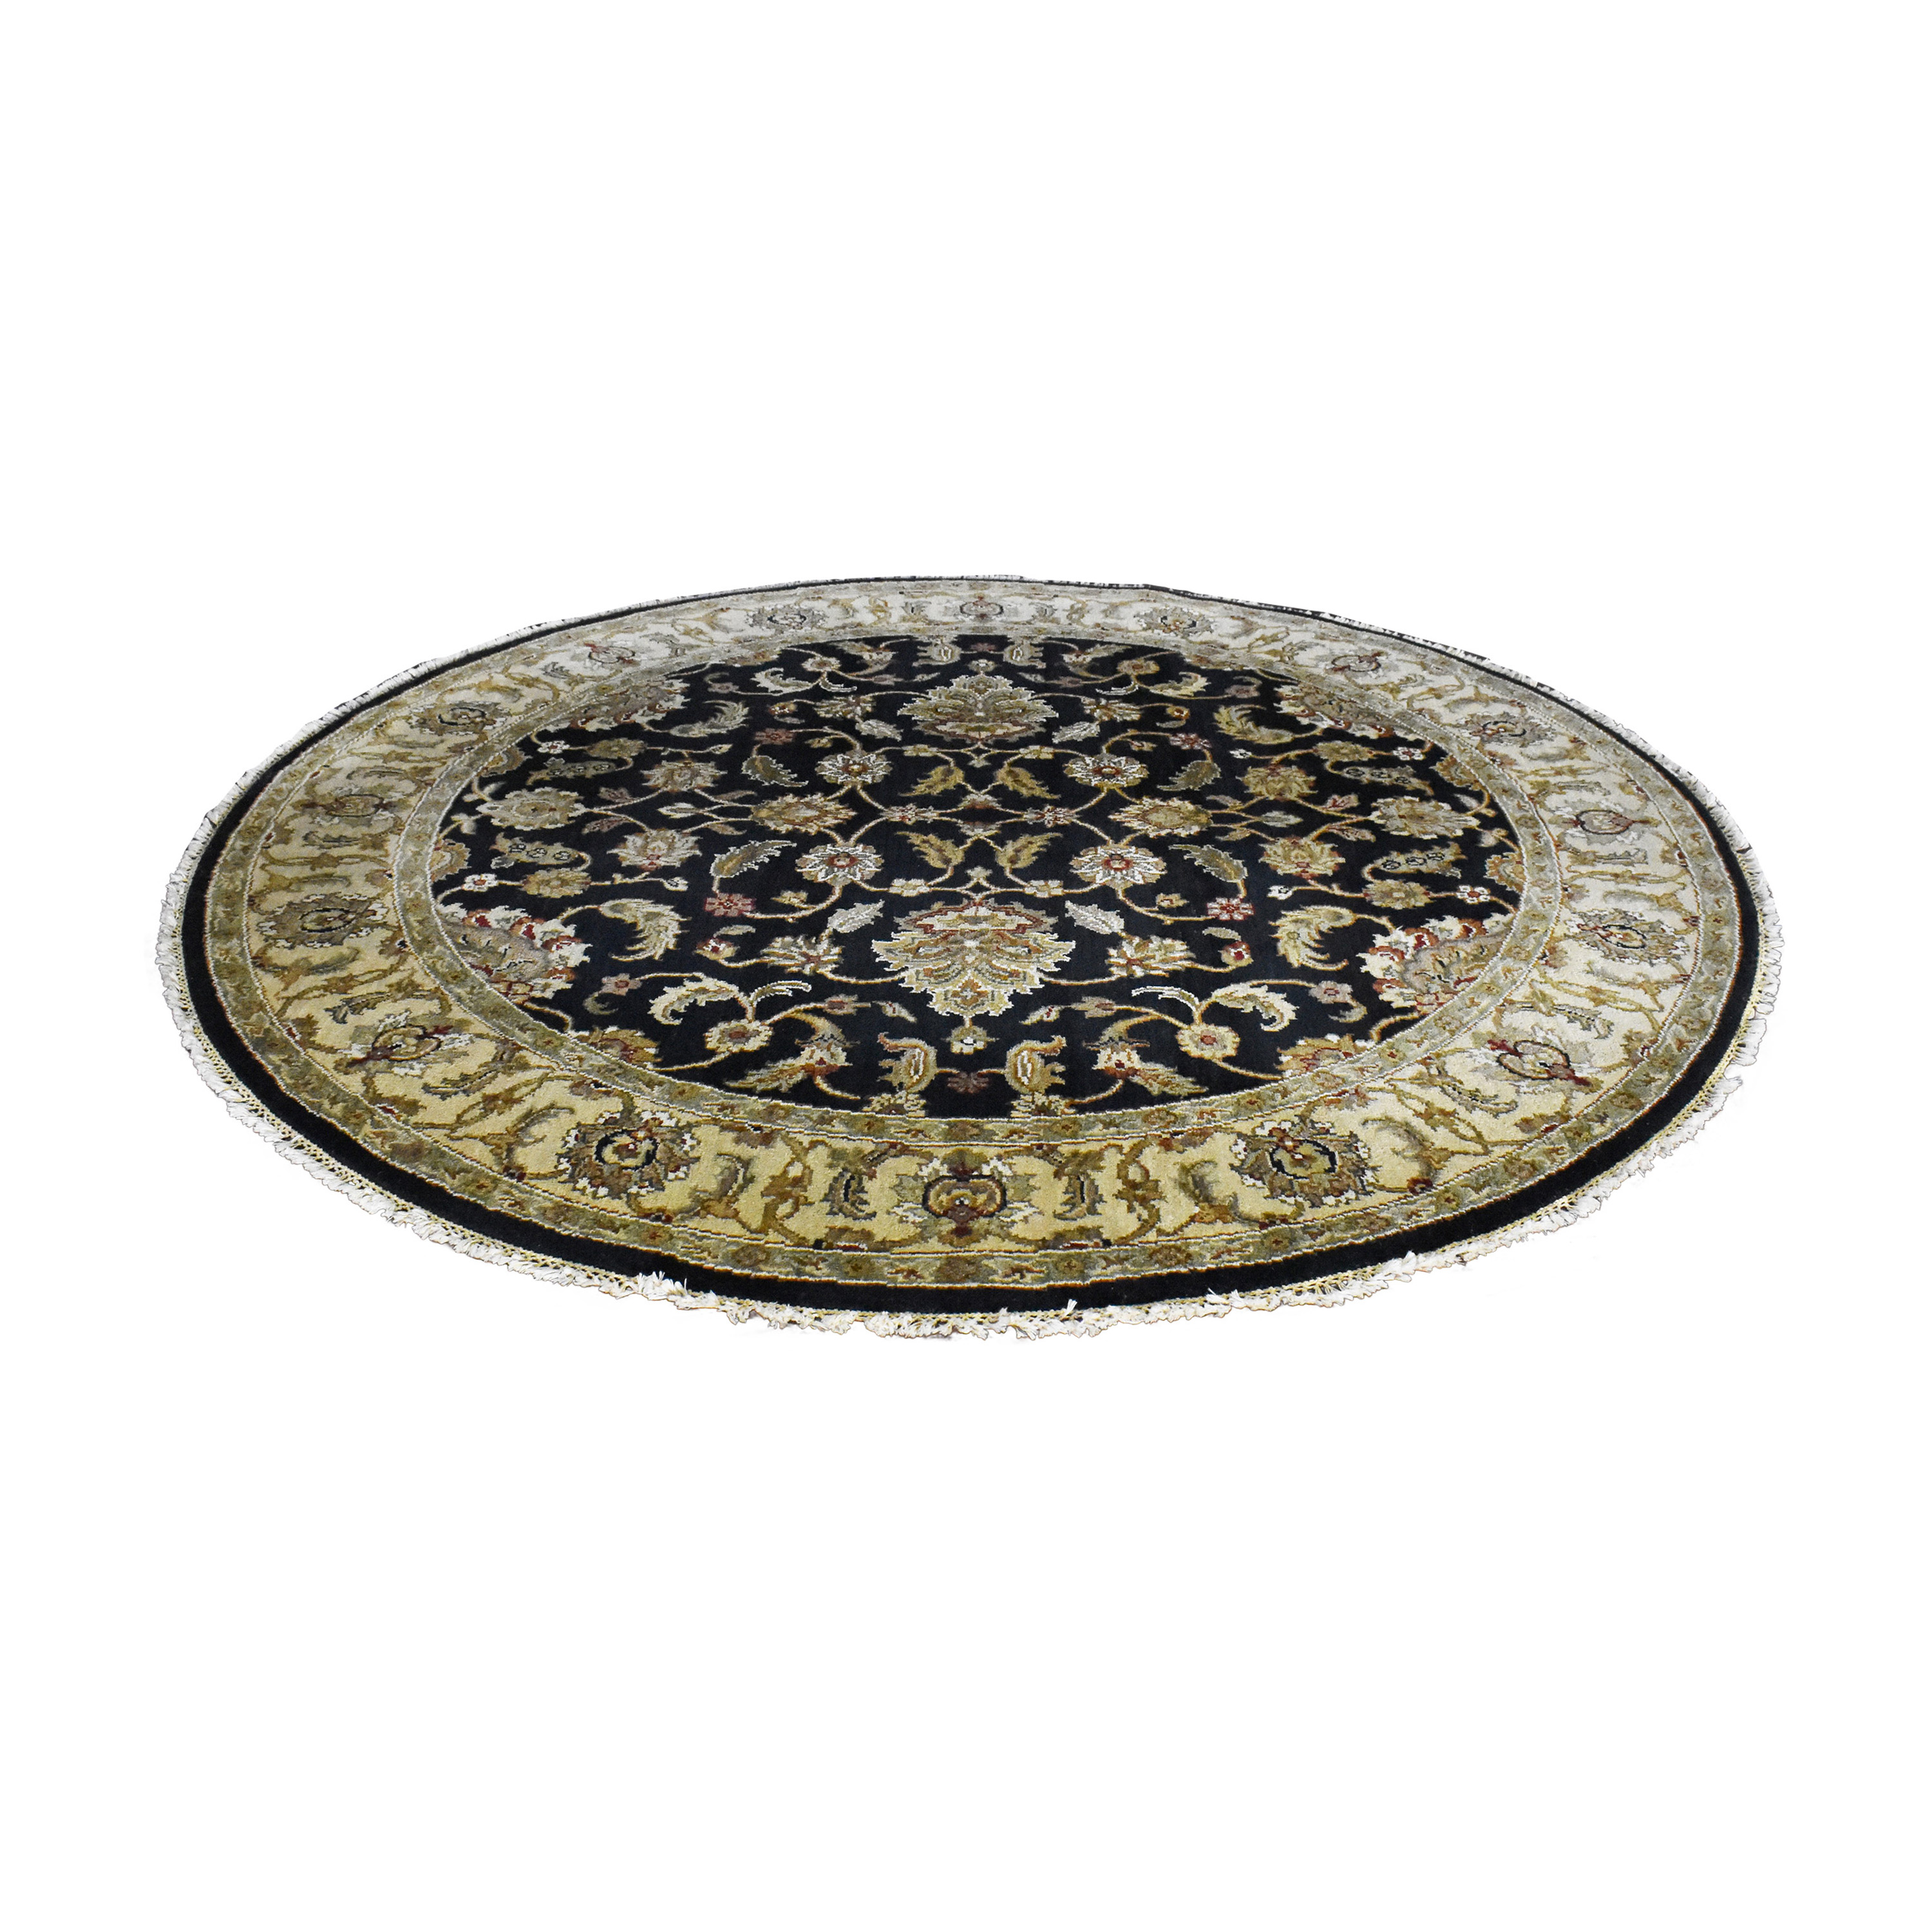 Round Patterned Area Rug on sale